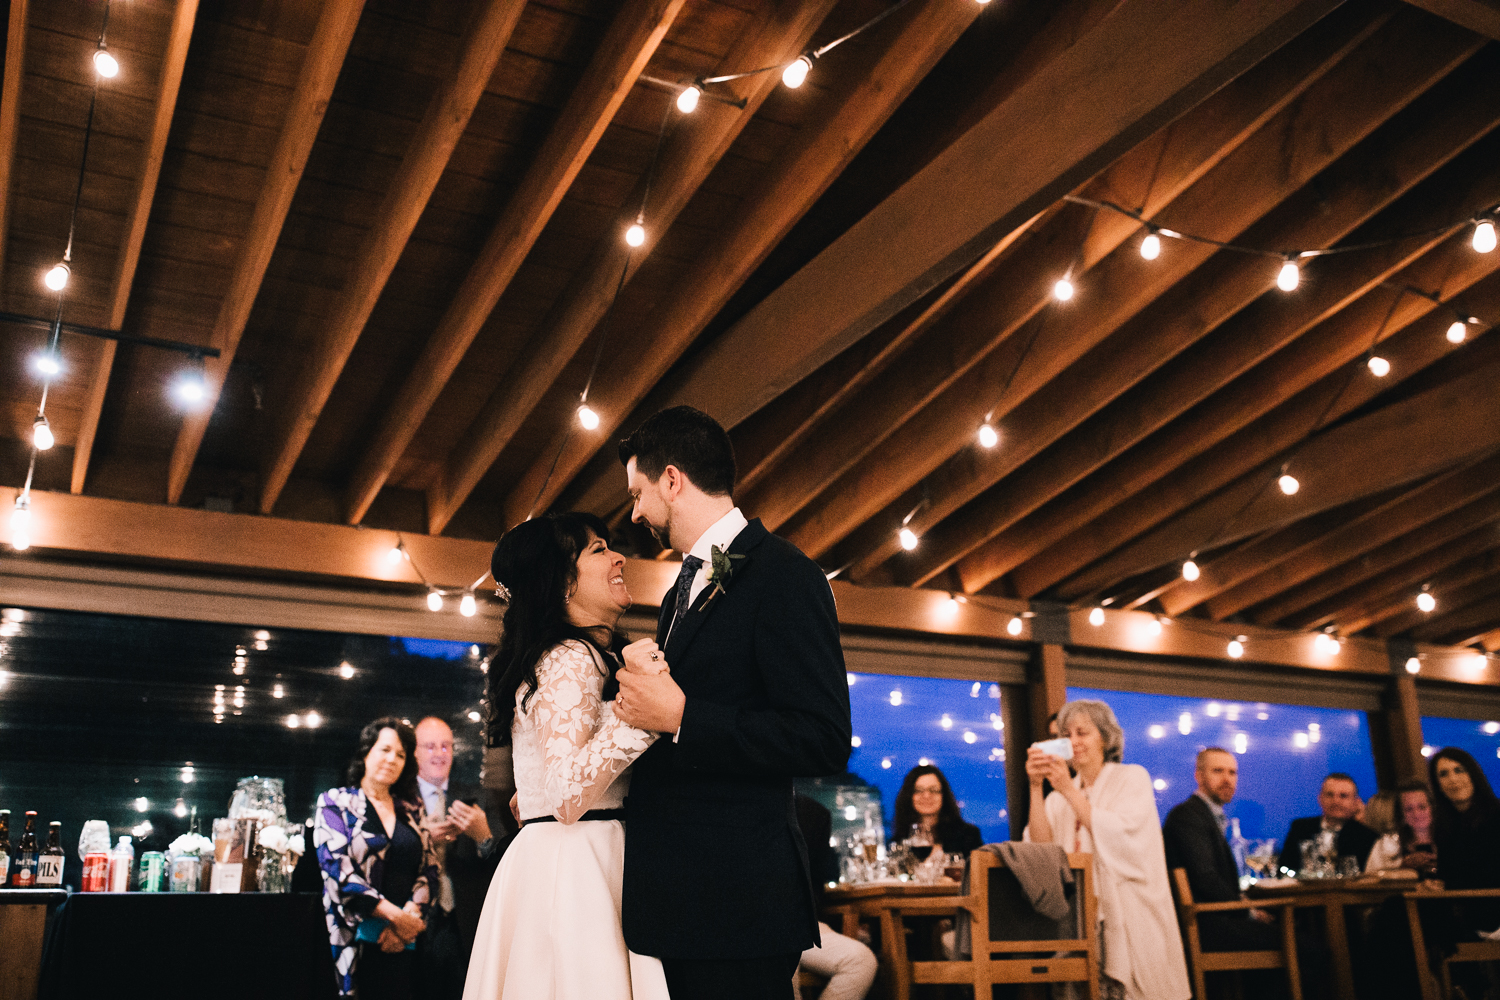 2019_05_ 182019.05.19 Lisa + Eddie South Bay Wedding Blog Photos Edited For Web 0140.jpg